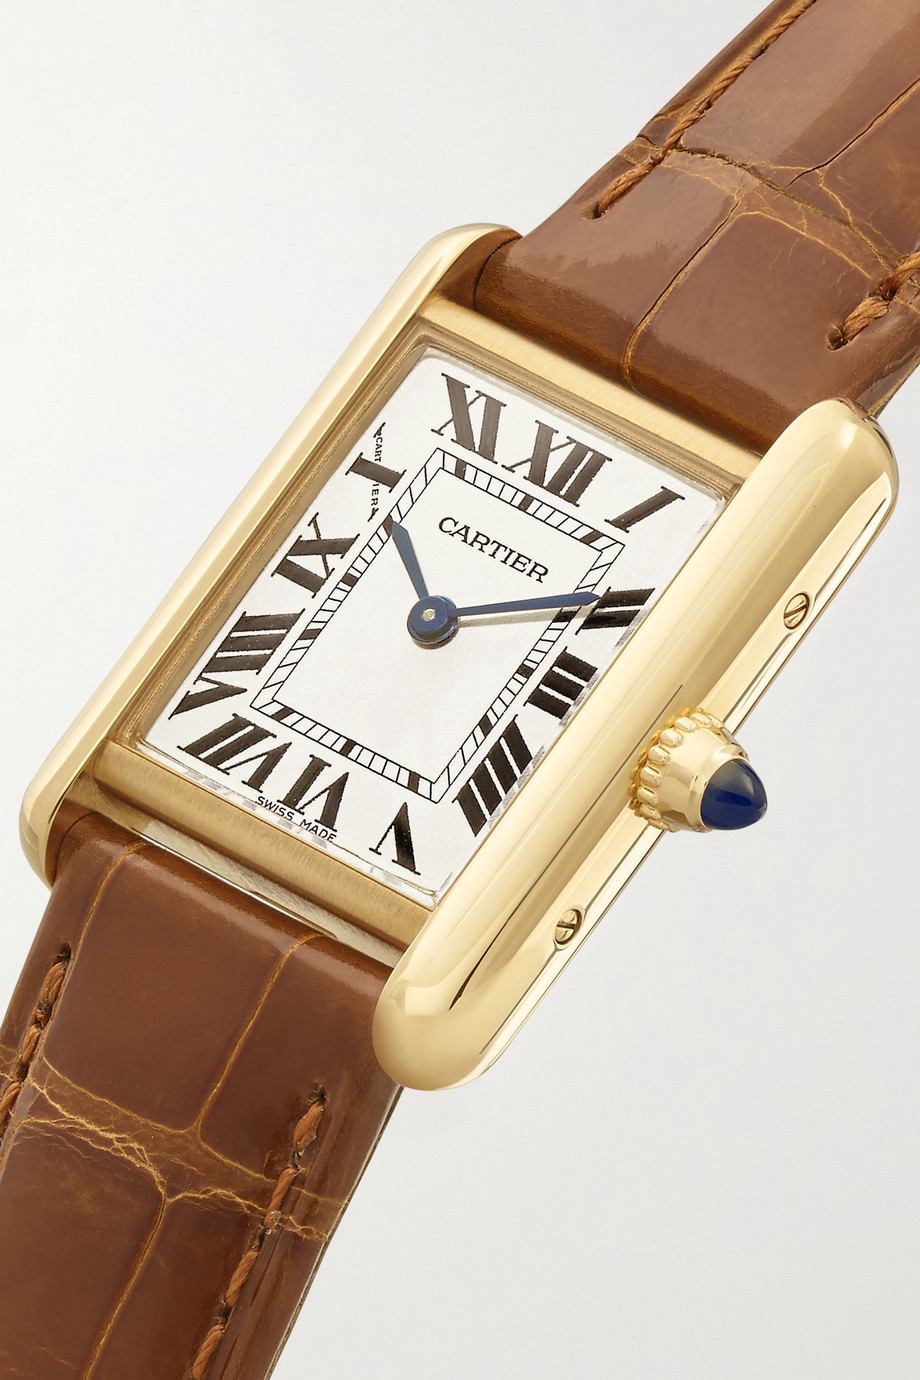 Cartier Tank Louis Cartier 22mm small 18-karat gold and alligator watch